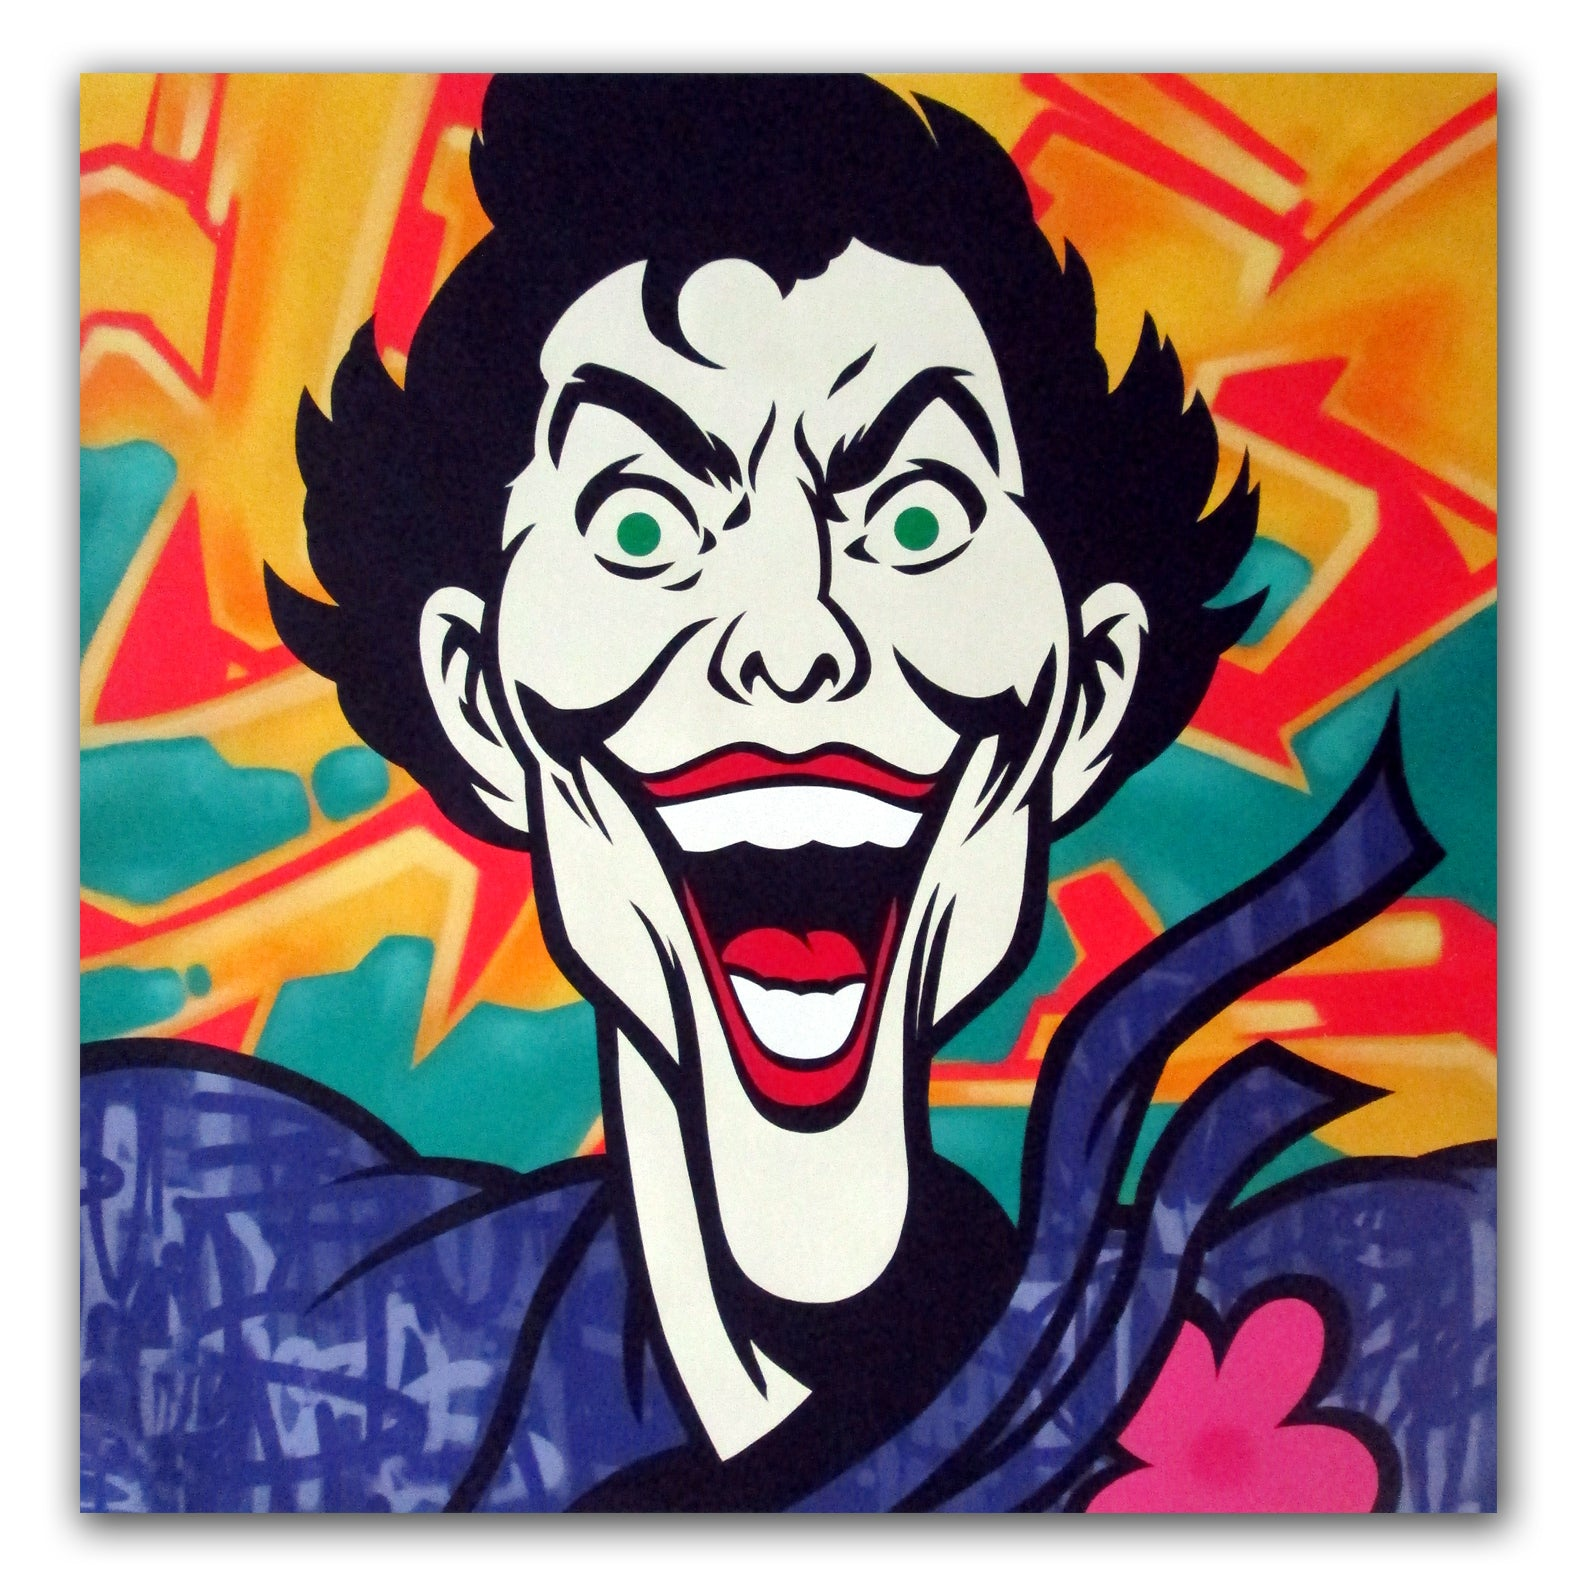 Graffiti Artist Seen Joker Aerosol On Canvas Dirtypilot